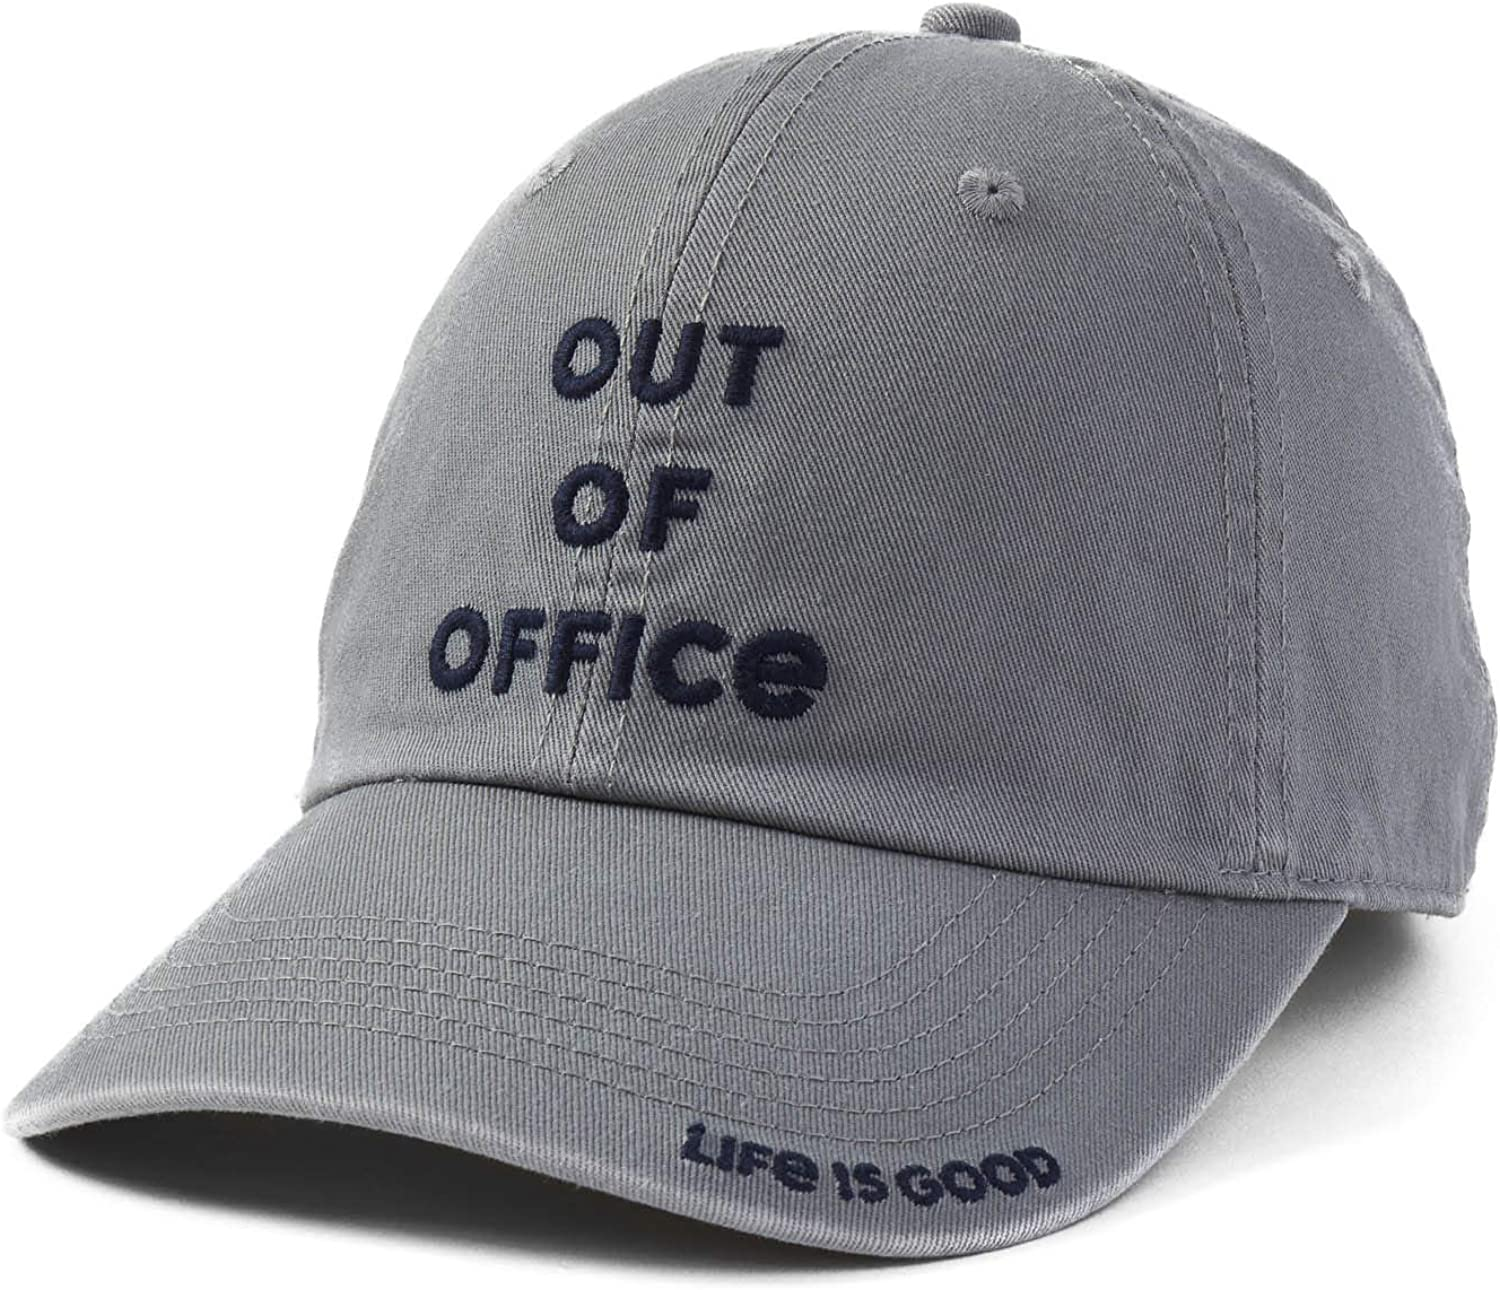 Life is Good Unisex-Adult Chill Cap Embroidered Brim Baseball Hat